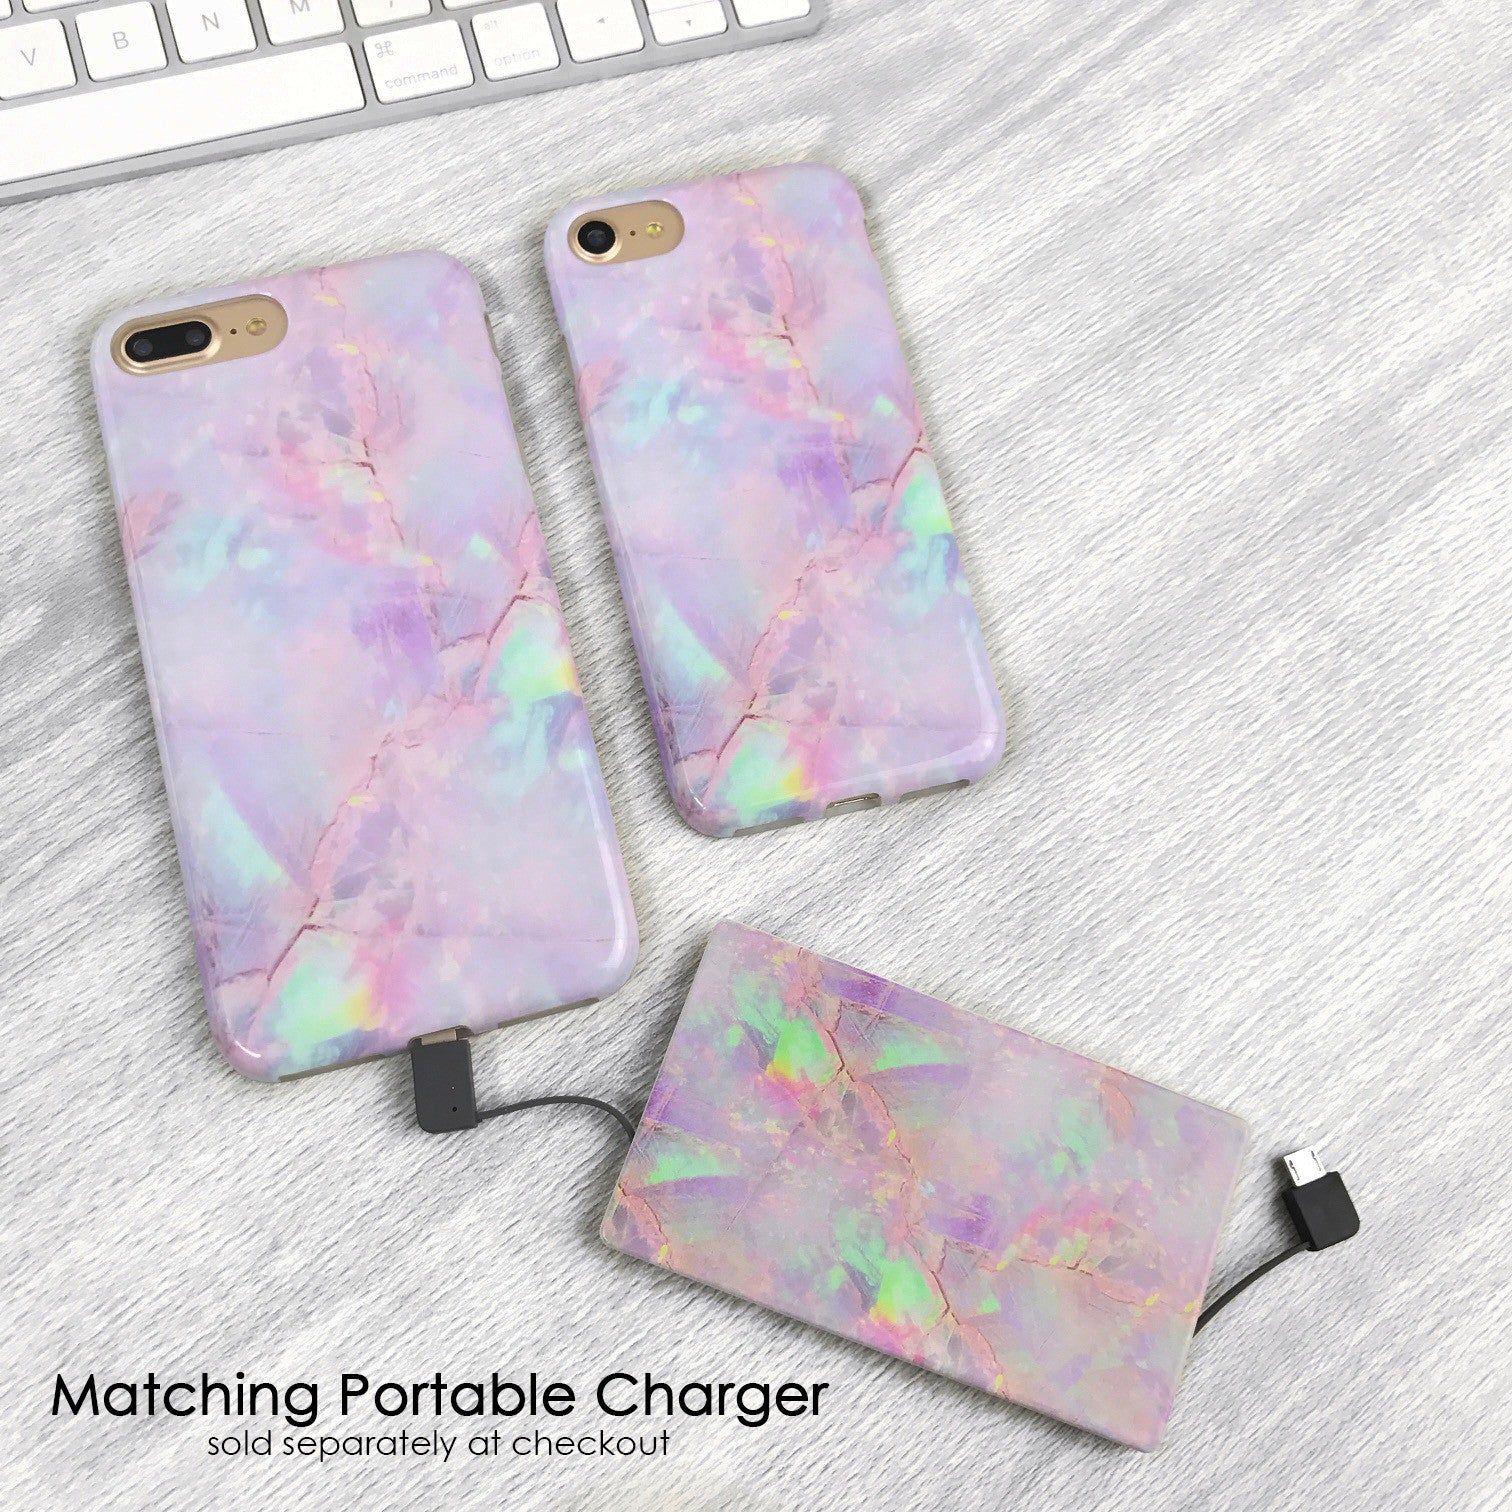 Wonderful Wallpaper Marble Cotton Candy - coton_candy_charger_text_overlay  Pictures_23386.jpg?v\u003d1526668984